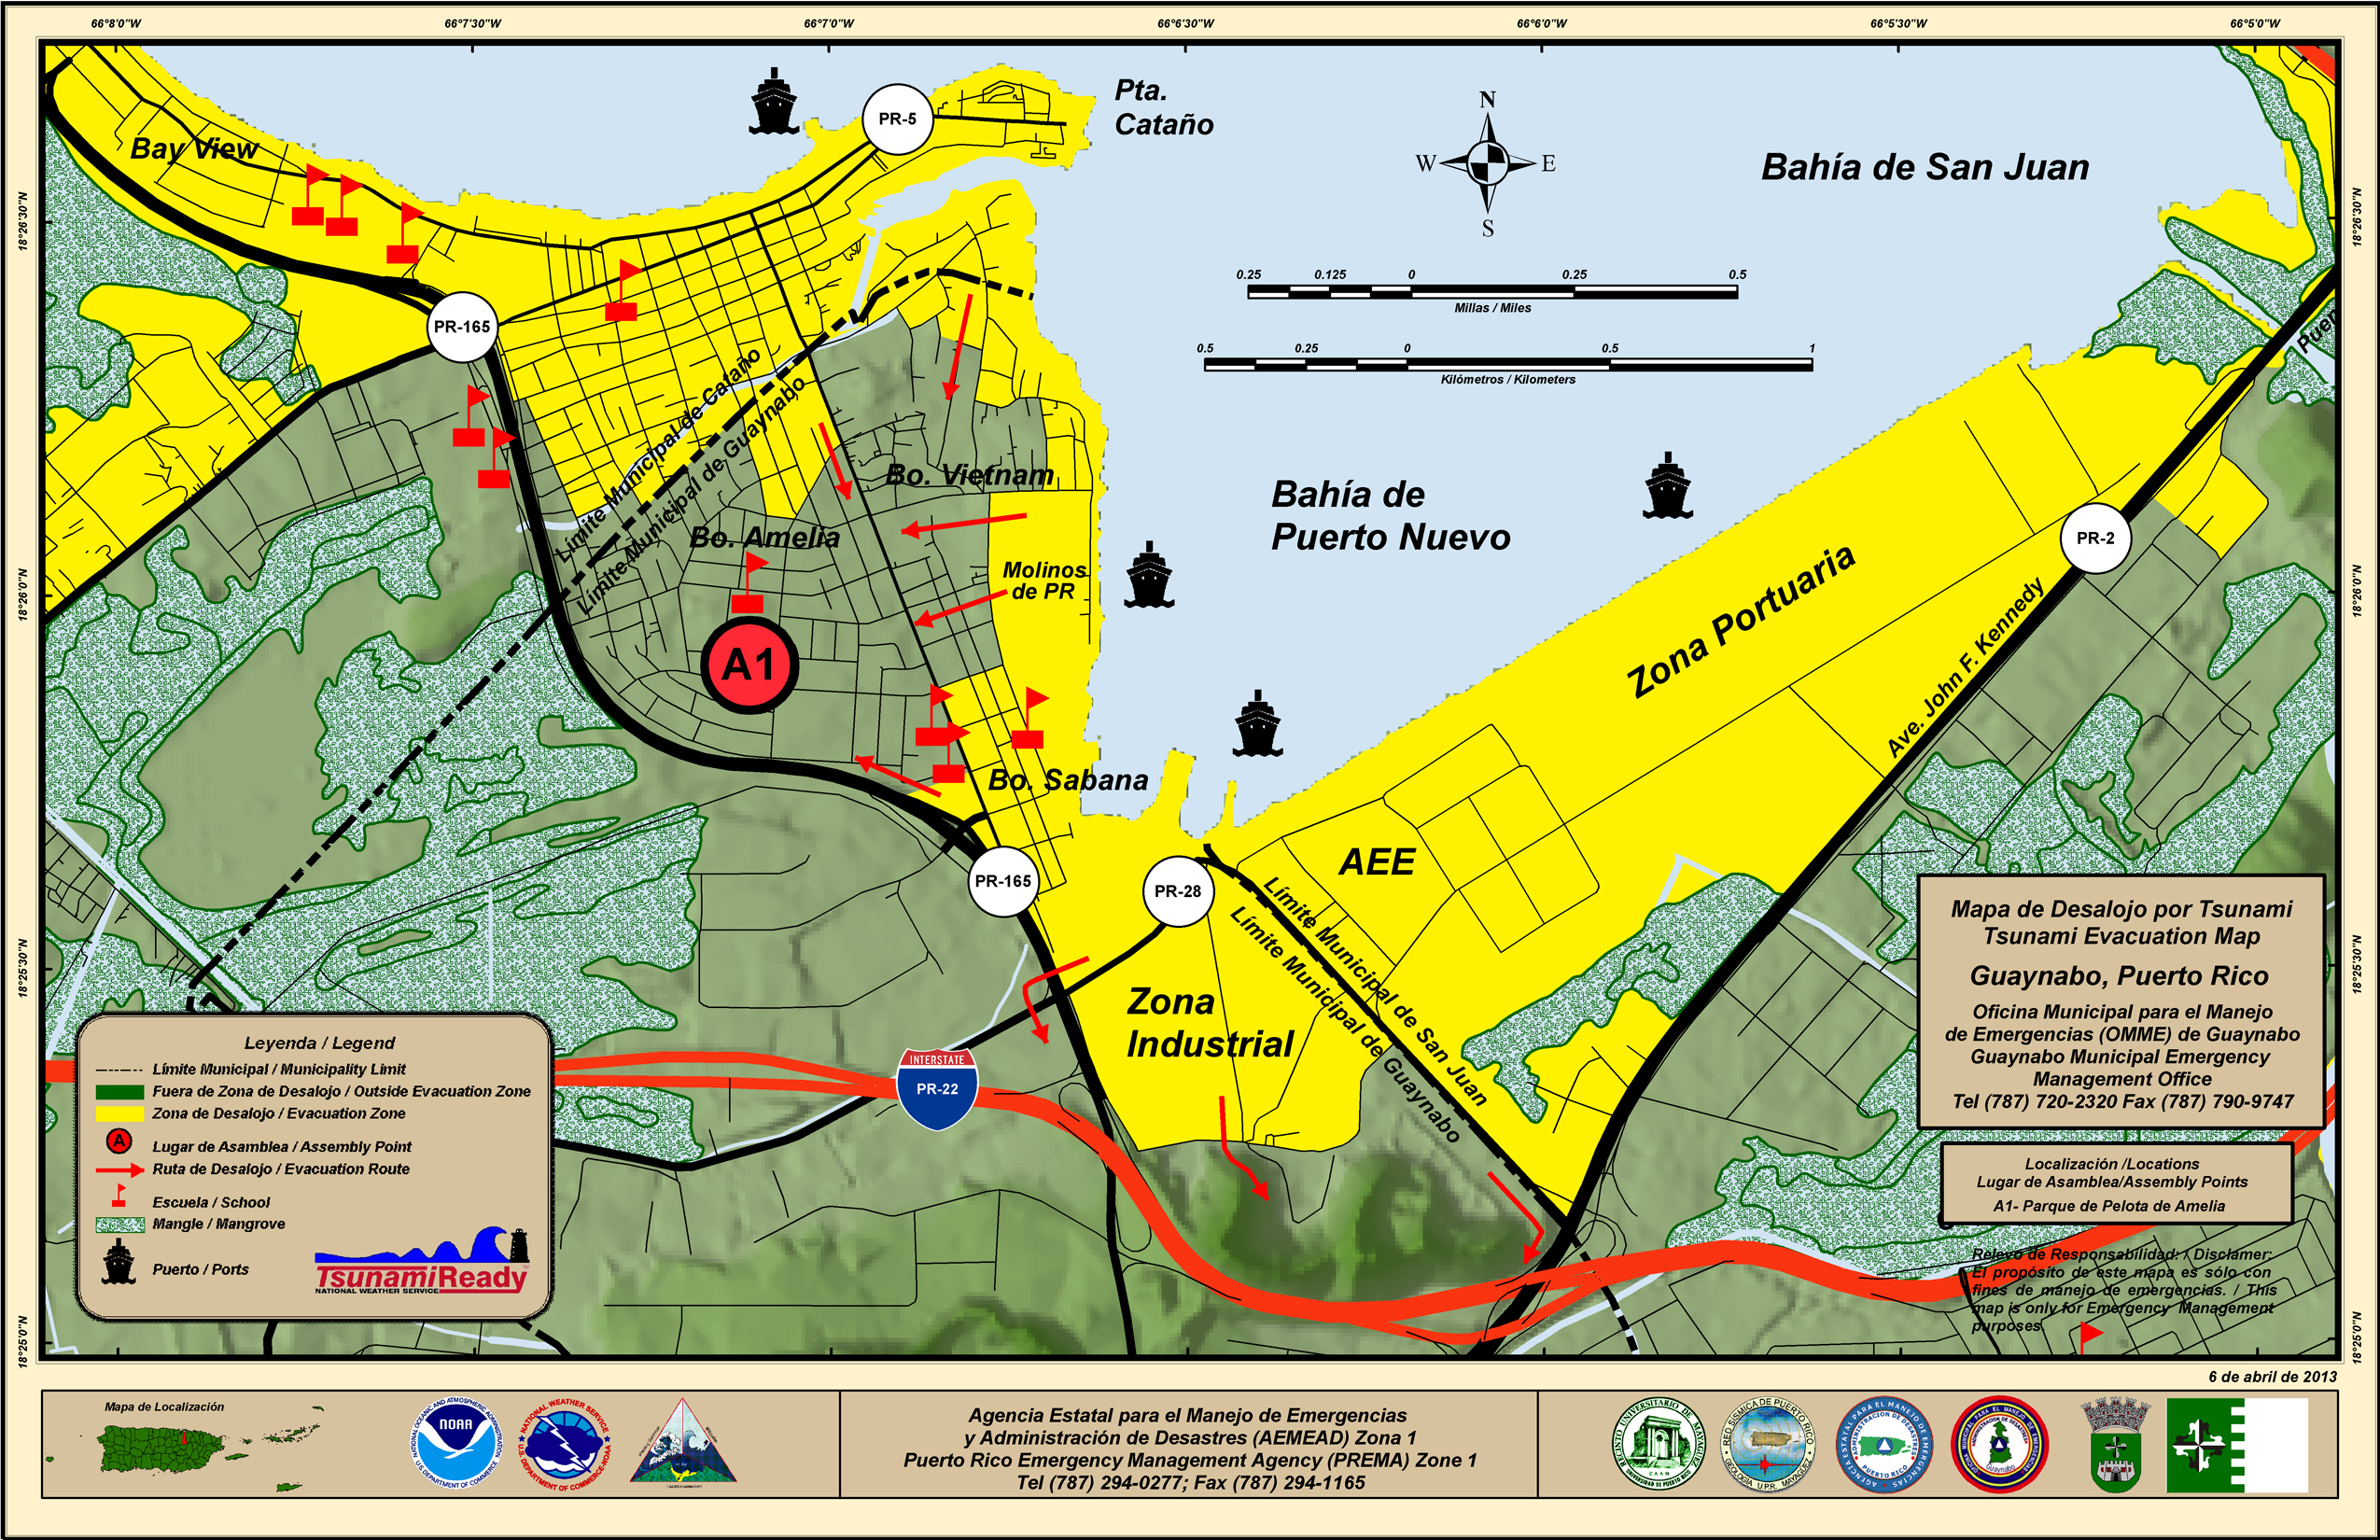 Evacuation Plan - Guaynabo map